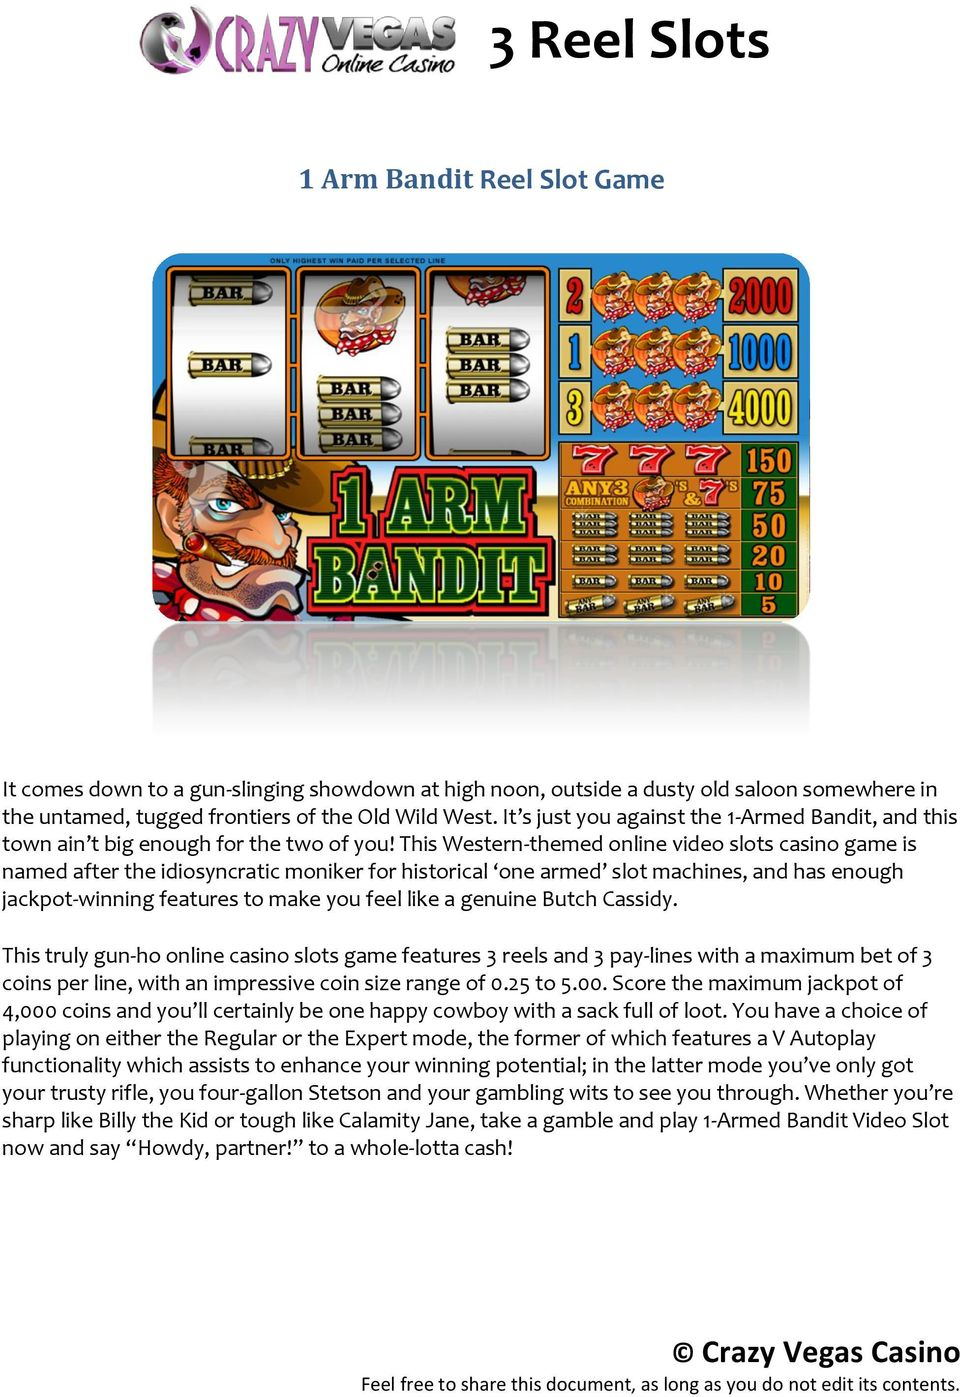 This Western-themed online video slots casino game is named after the idiosyncratic moniker for historical one armed slot machines, and has enough jackpot-winning features to make you feel like a